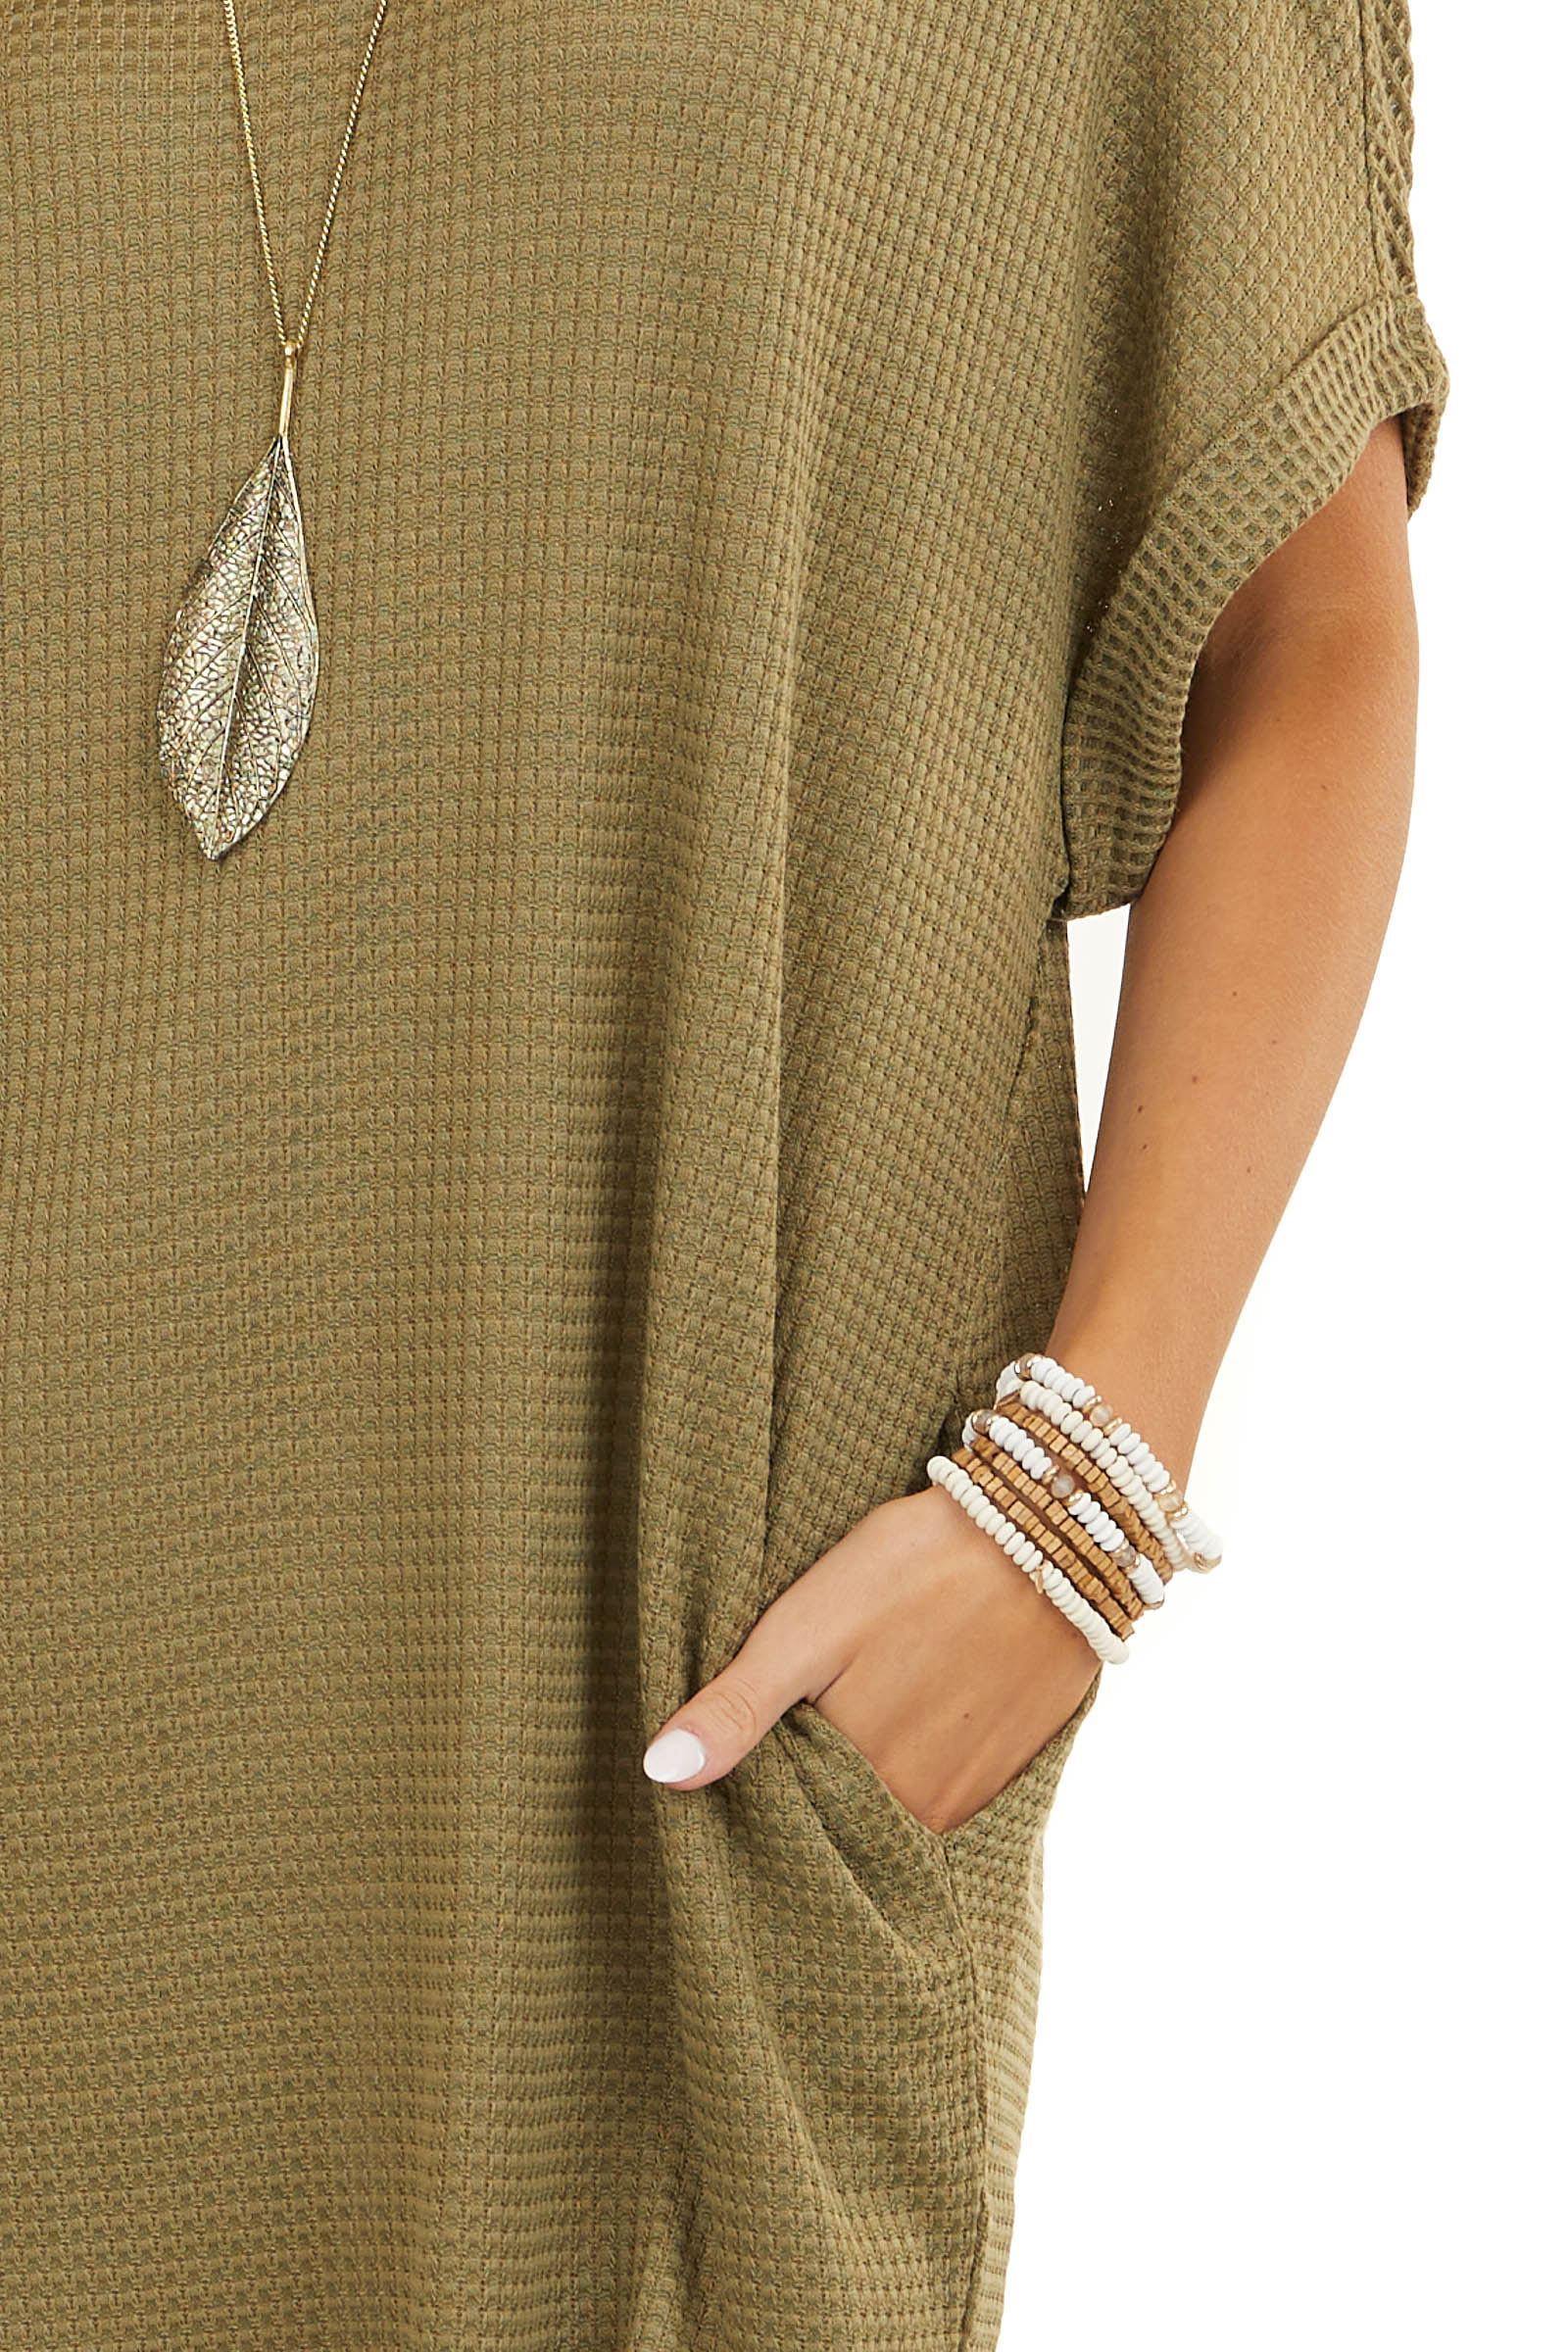 Olive Green Short Sleeve Waffle Knit Dress with Pockets